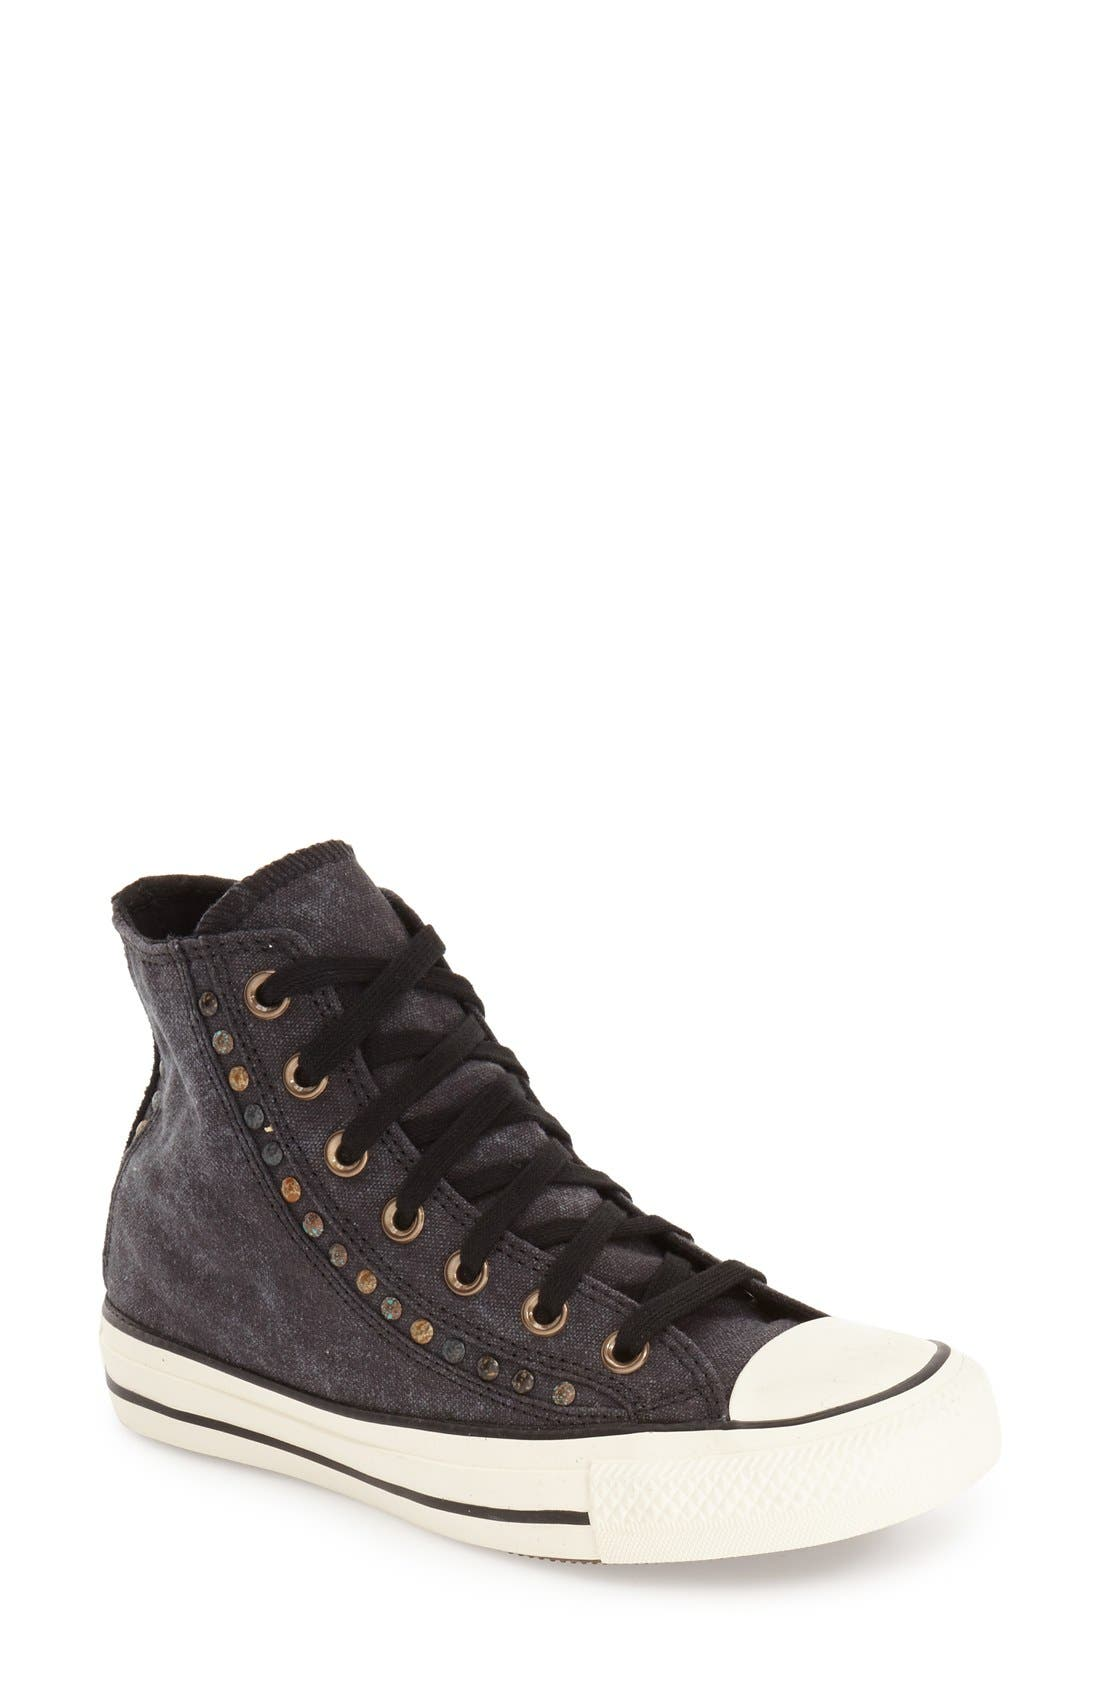 Main Image - Converse Chuck Taylor® All Star® 'Eyerow' Studded High Top Sneaker (Women)